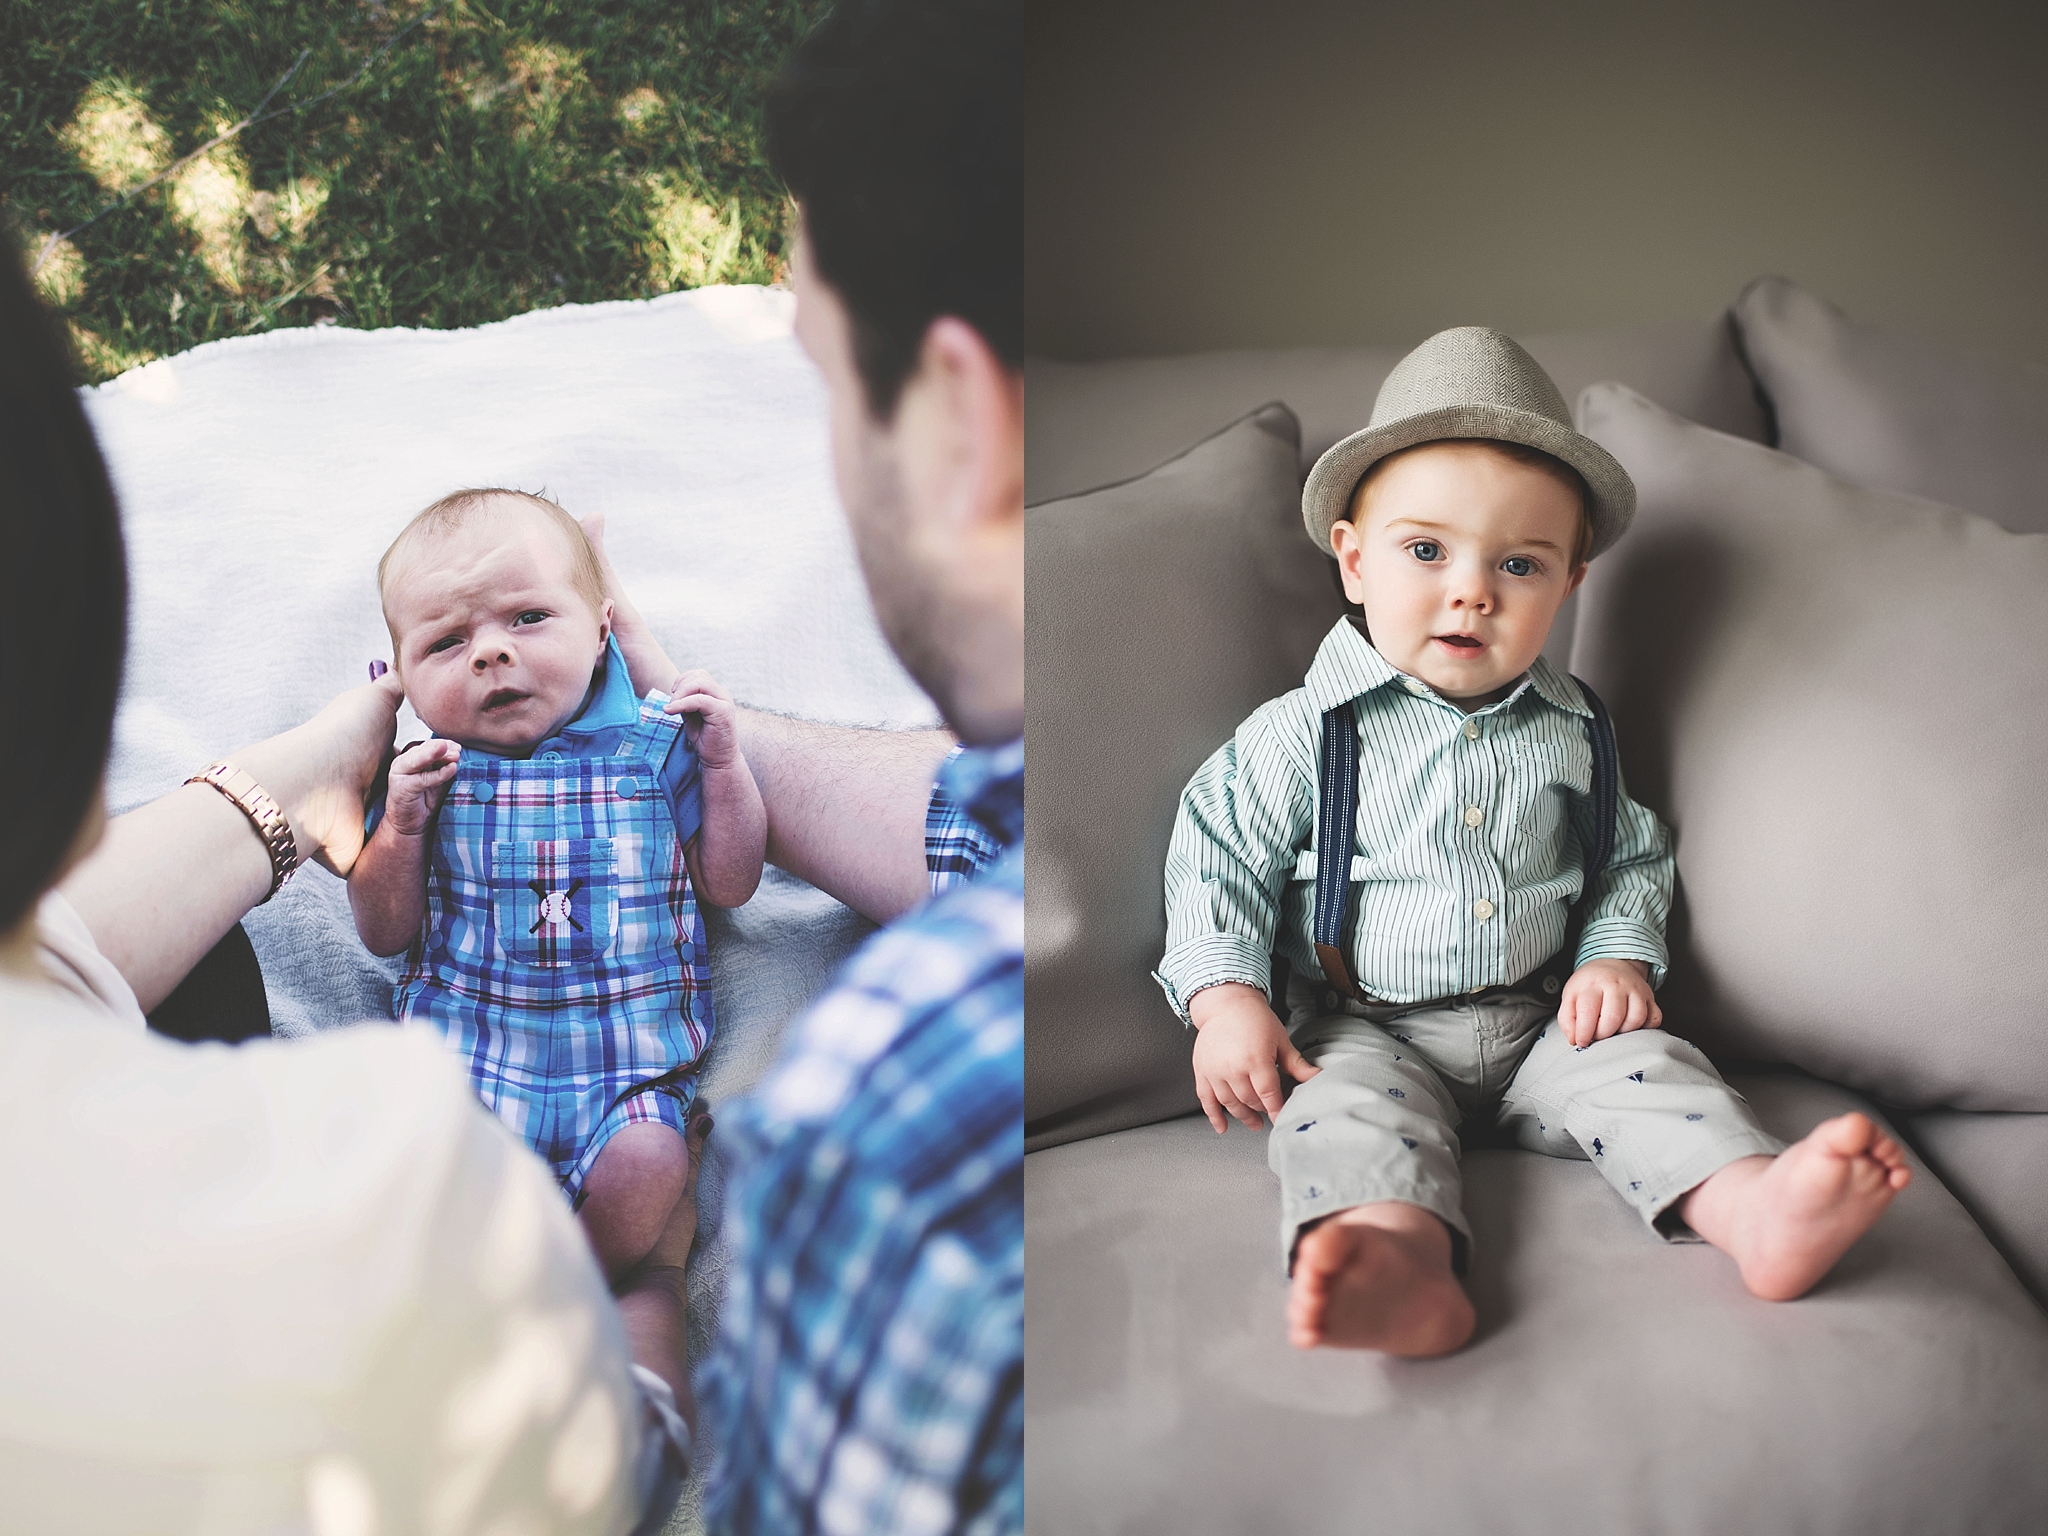 Bryce May 2016 (newborn) & Bryce May 2017 (one-year-old)